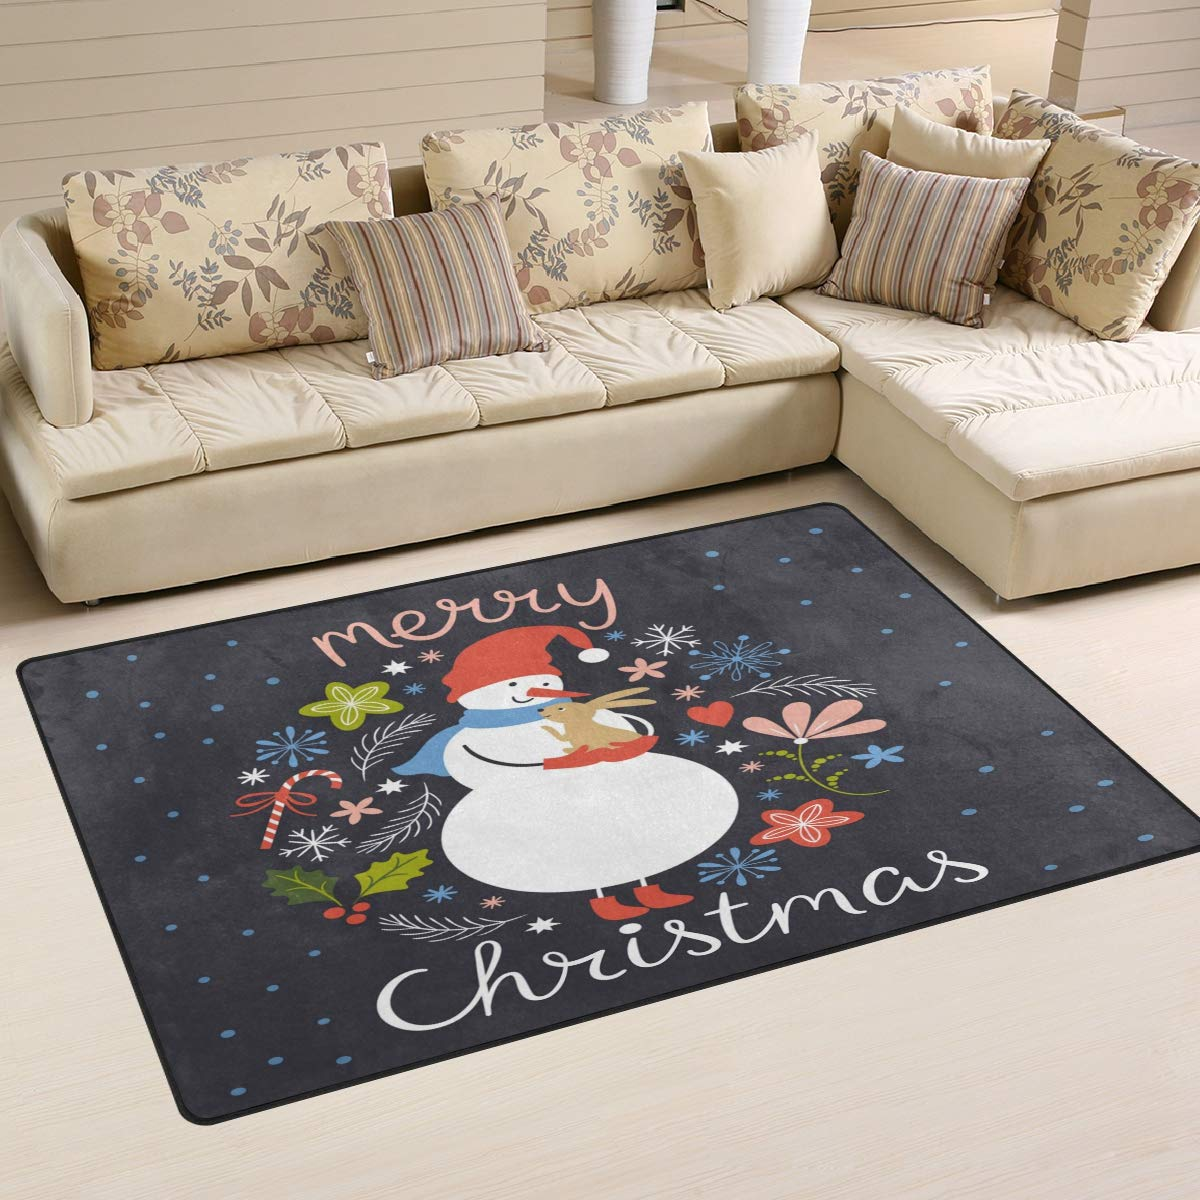 ALAZA Home Decor Cute Snowman with Little Rabbit Christmas Area Rug Carpet, Rugs Floor Carpet Mat Living Room Carpet for Girl's Room Home Indoor Decor 3'x5'